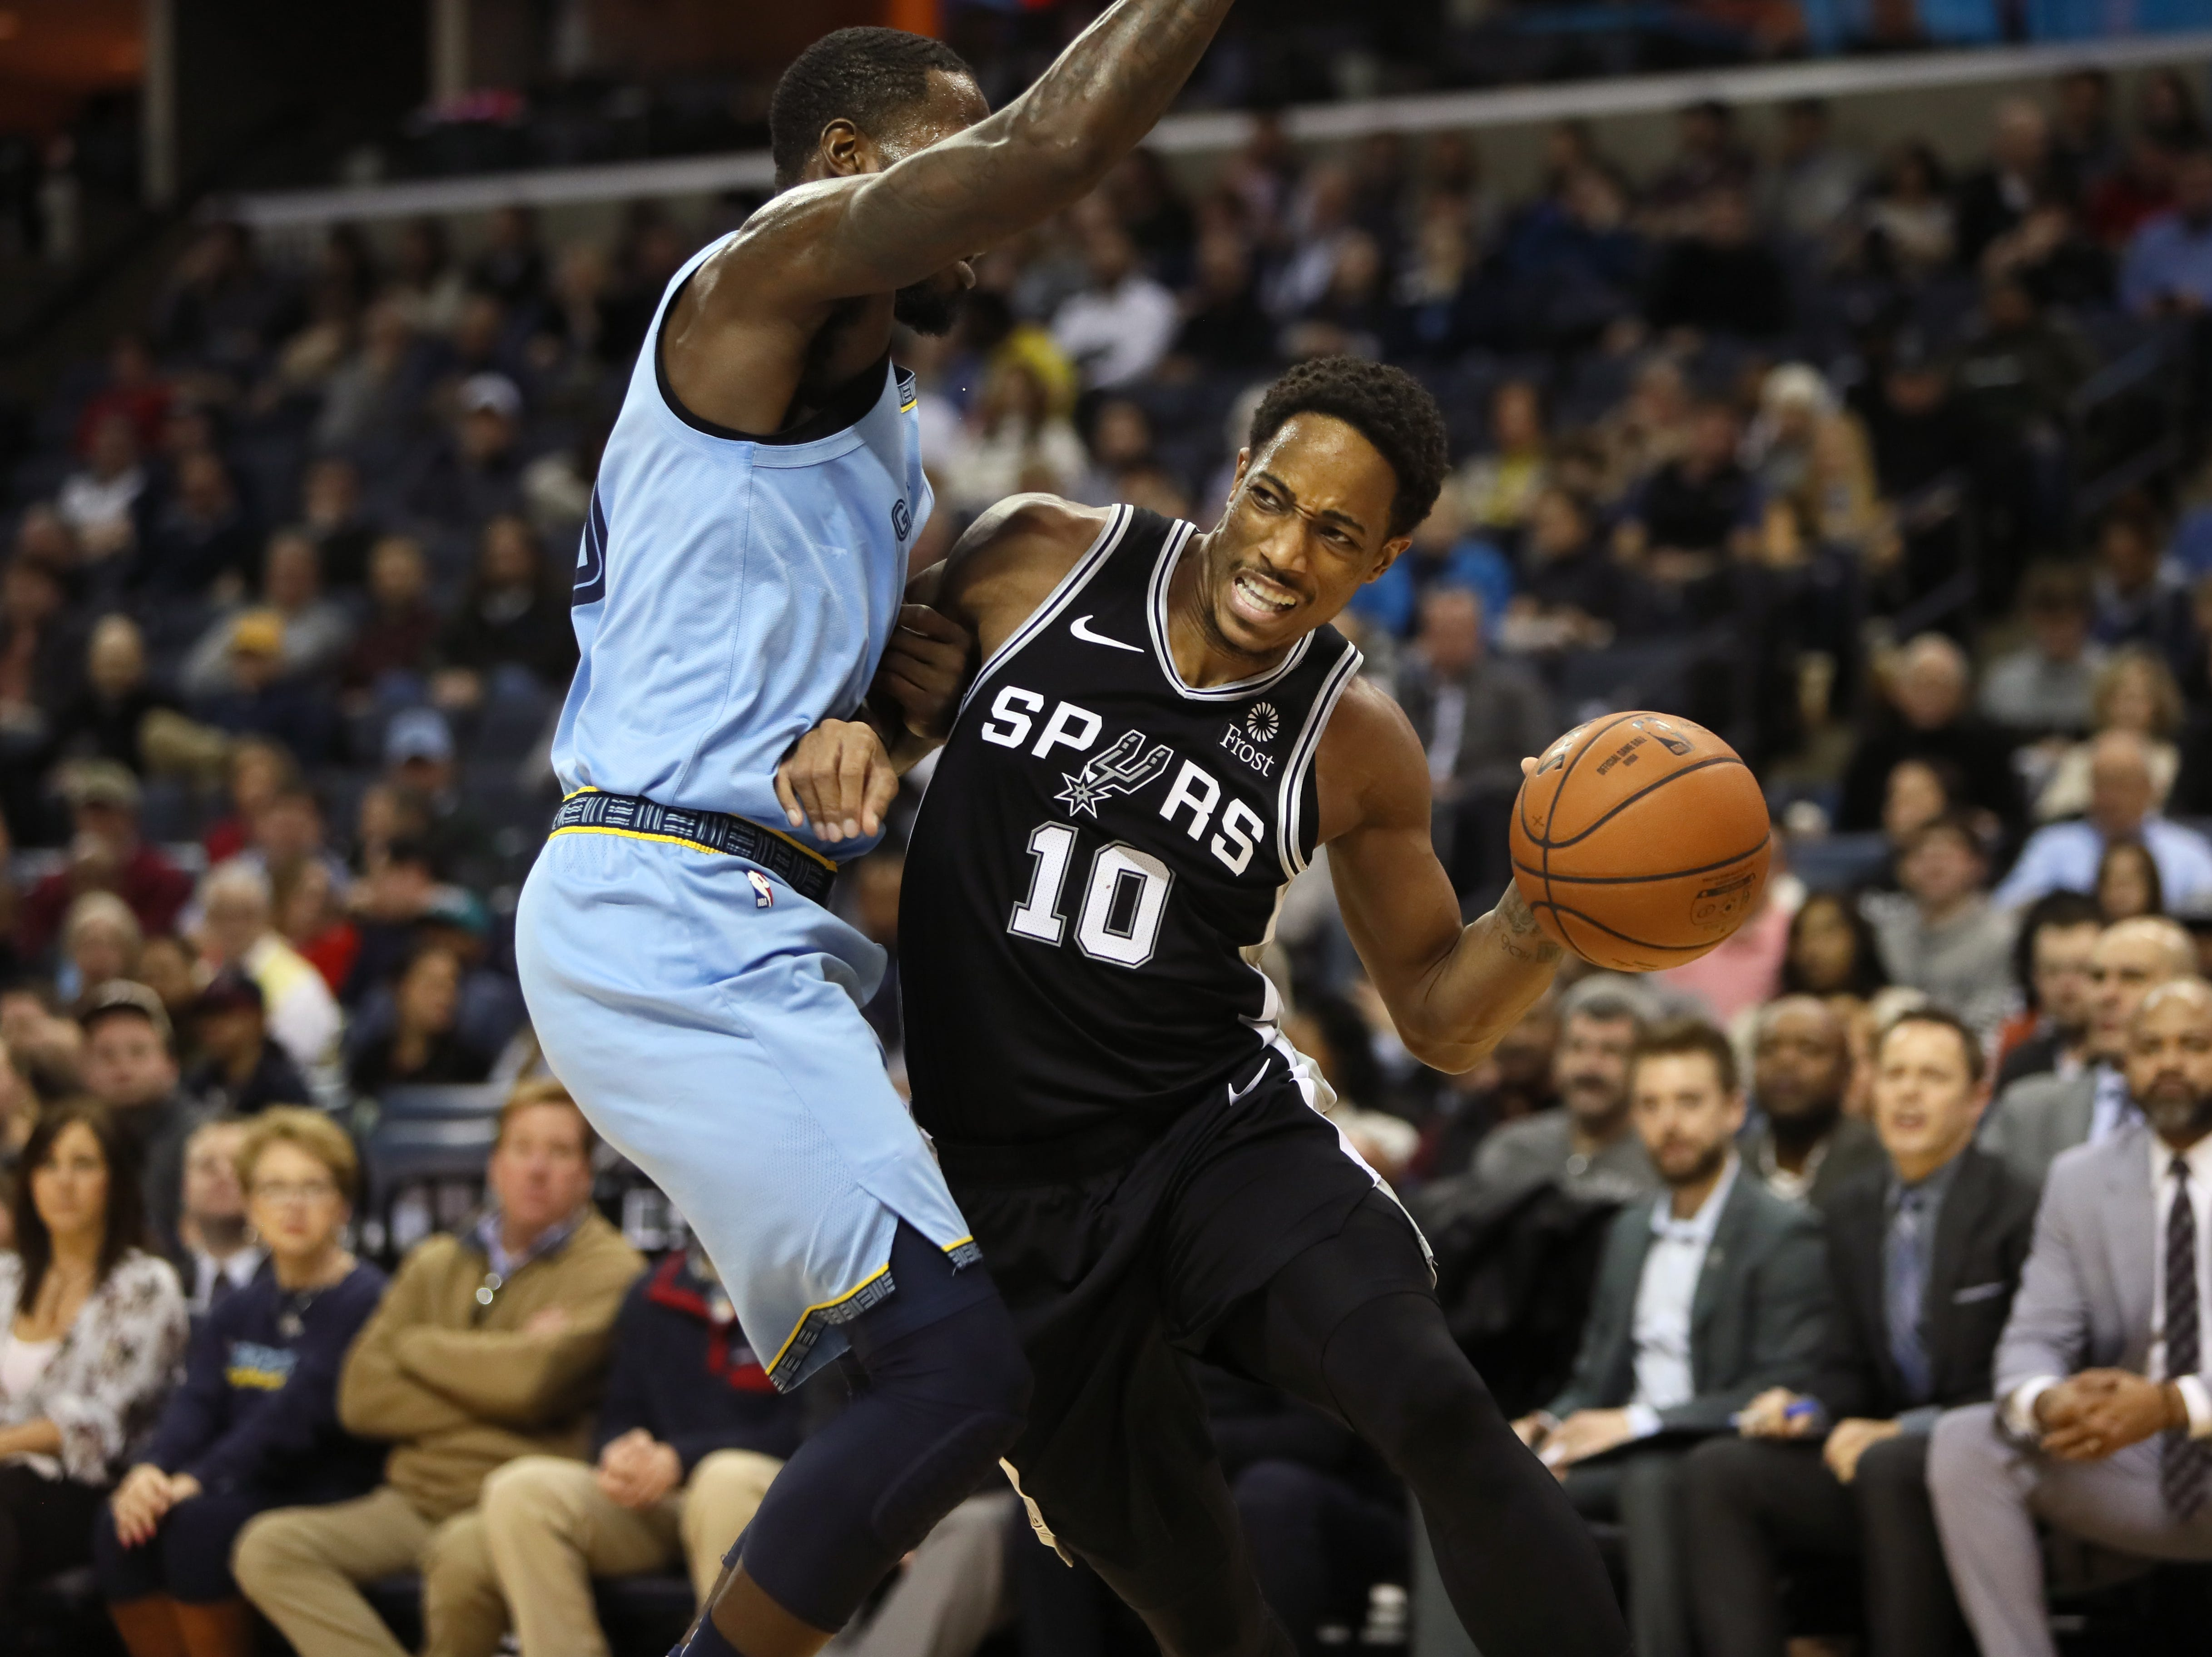 San Antonio Spurs guard DeMar DeRozan drives the baseline past Memphis Grizzlies defender JaMychal Green during their game at the FedExForum on Wednesday, Jan. 9, 2019.